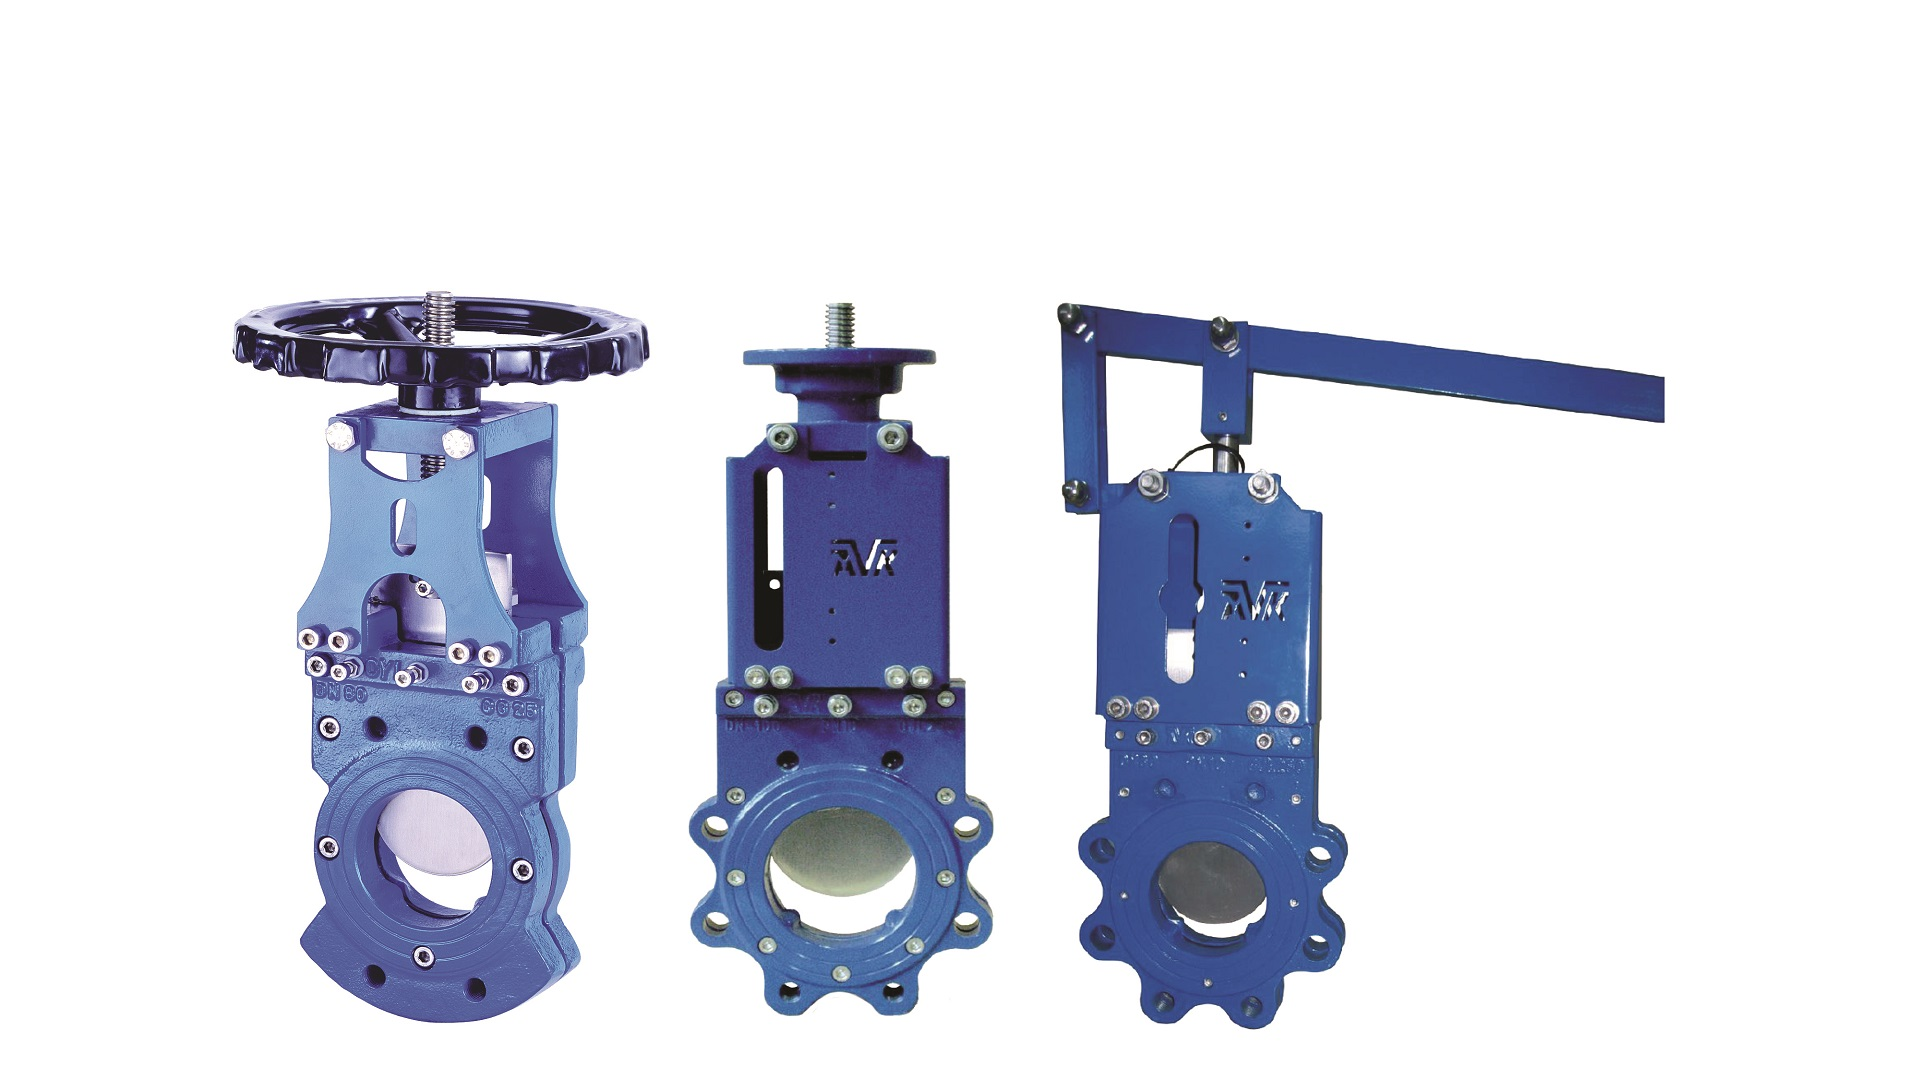 AVK knife gate valves